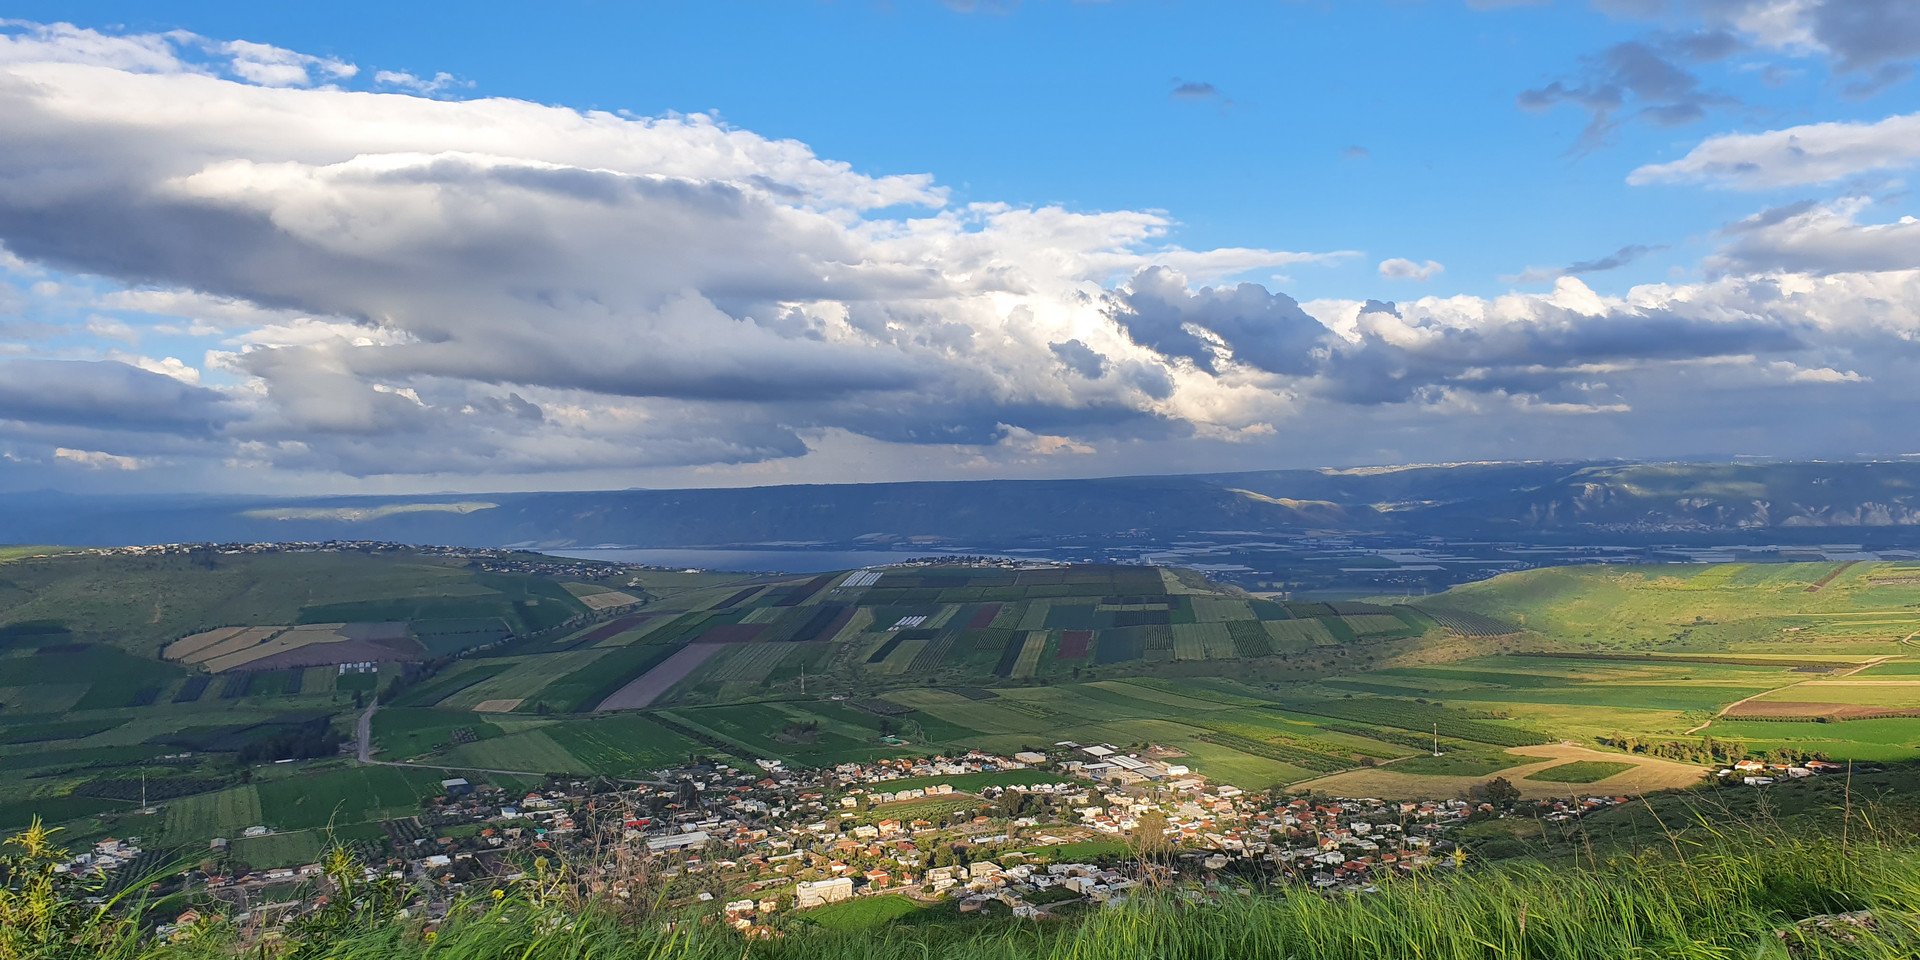 Lookout to Yavne'el and the Kinneret